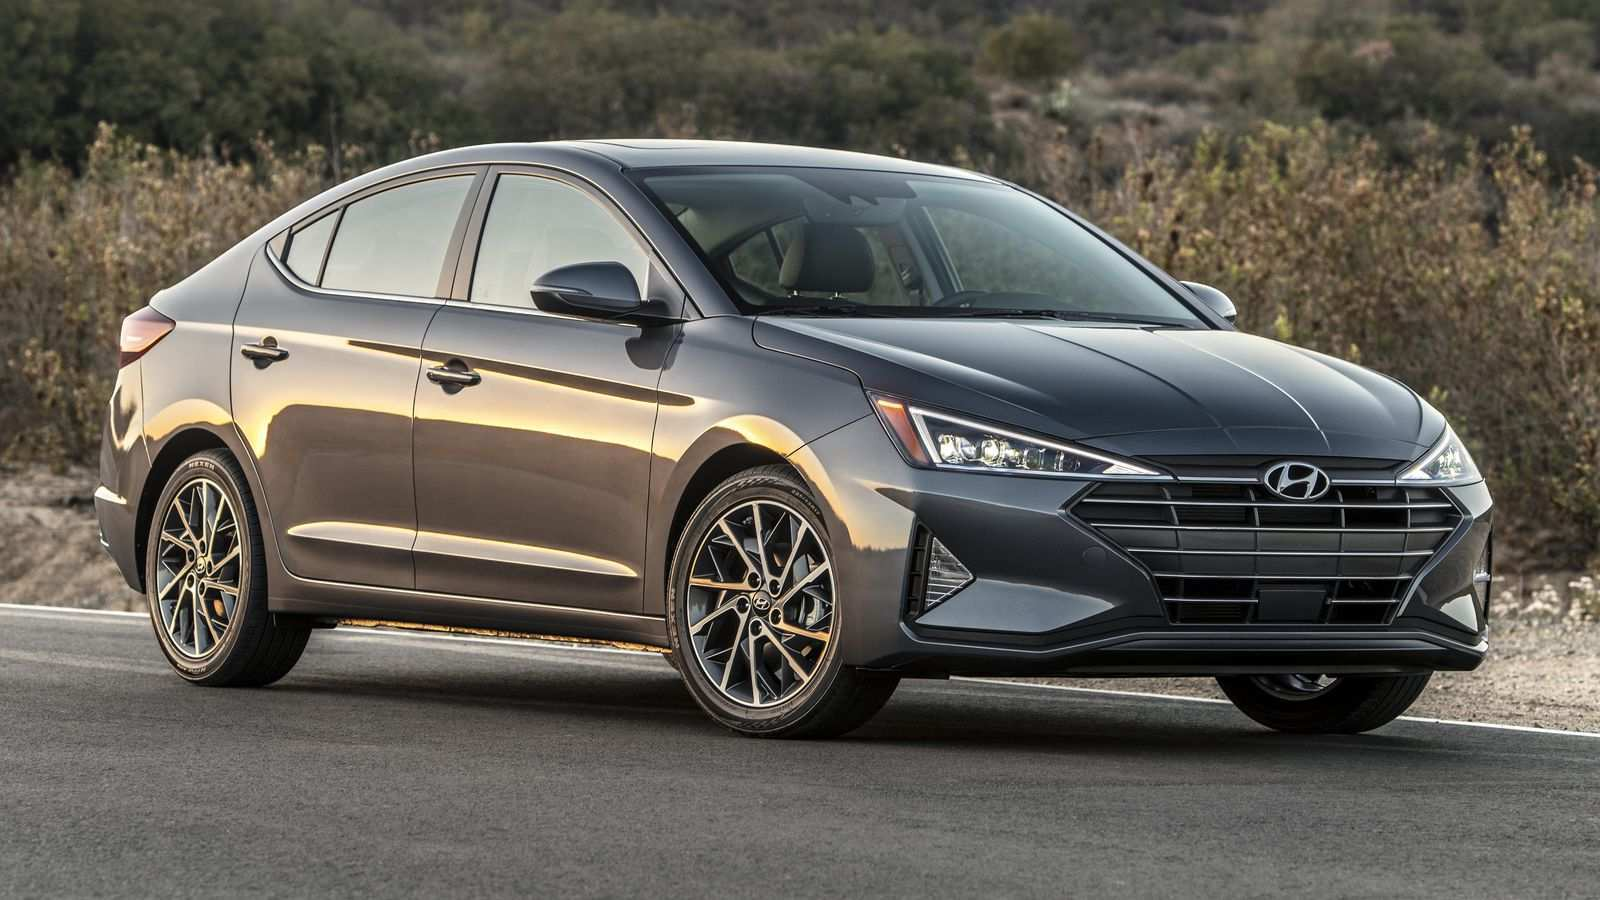 65 Gallery of 2019 Hyundai Elantra Limited Redesign for 2019 Hyundai Elantra Limited